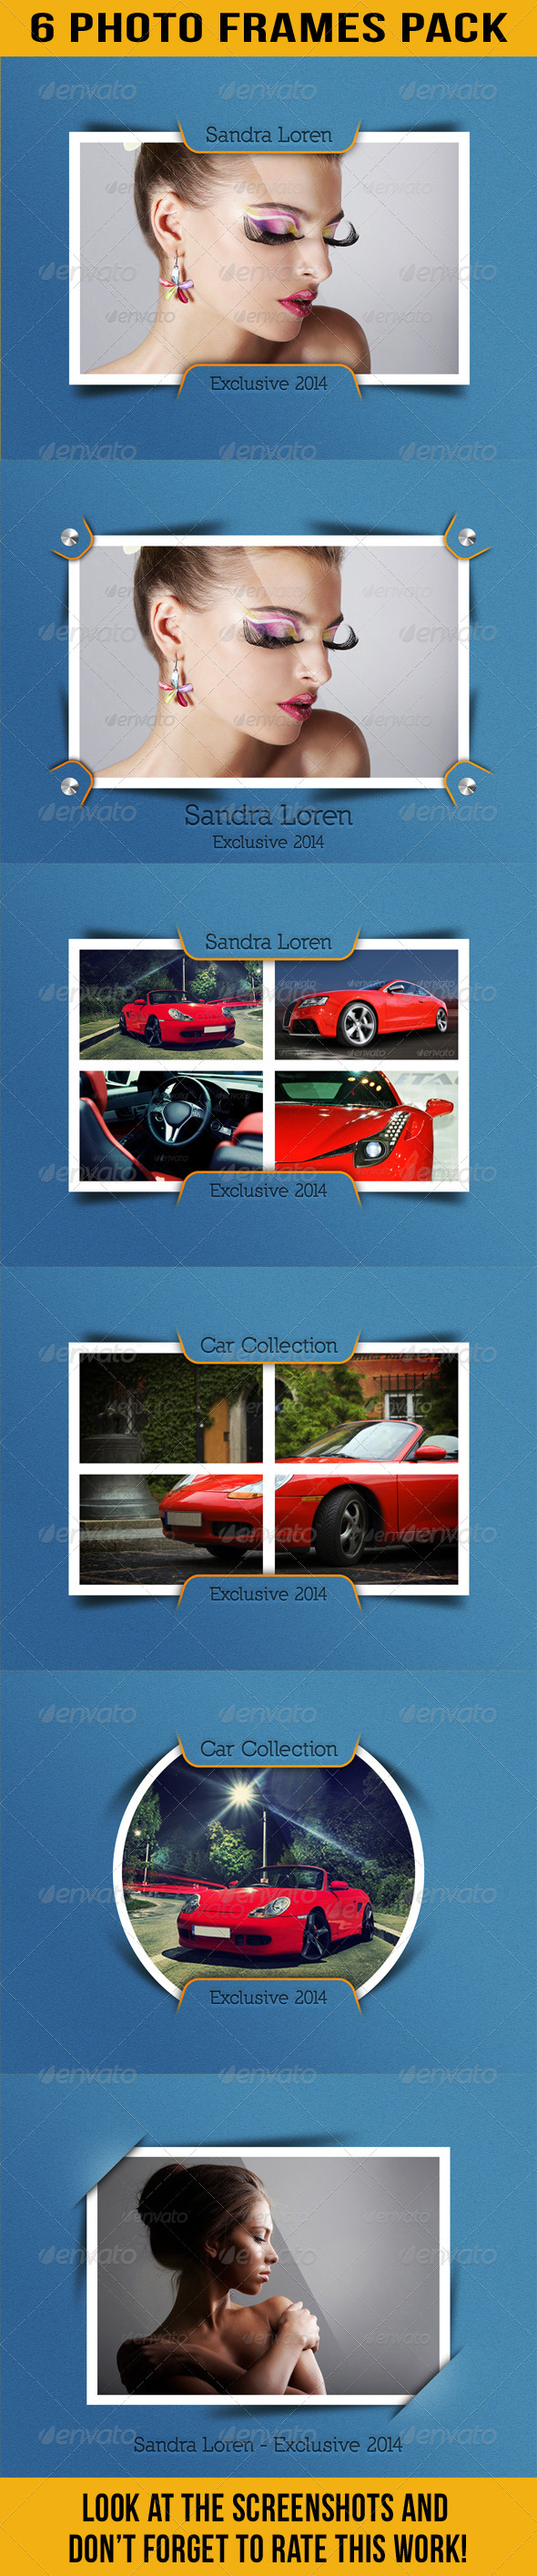 GraphicRiver Photo Frames Pack 11 6850097